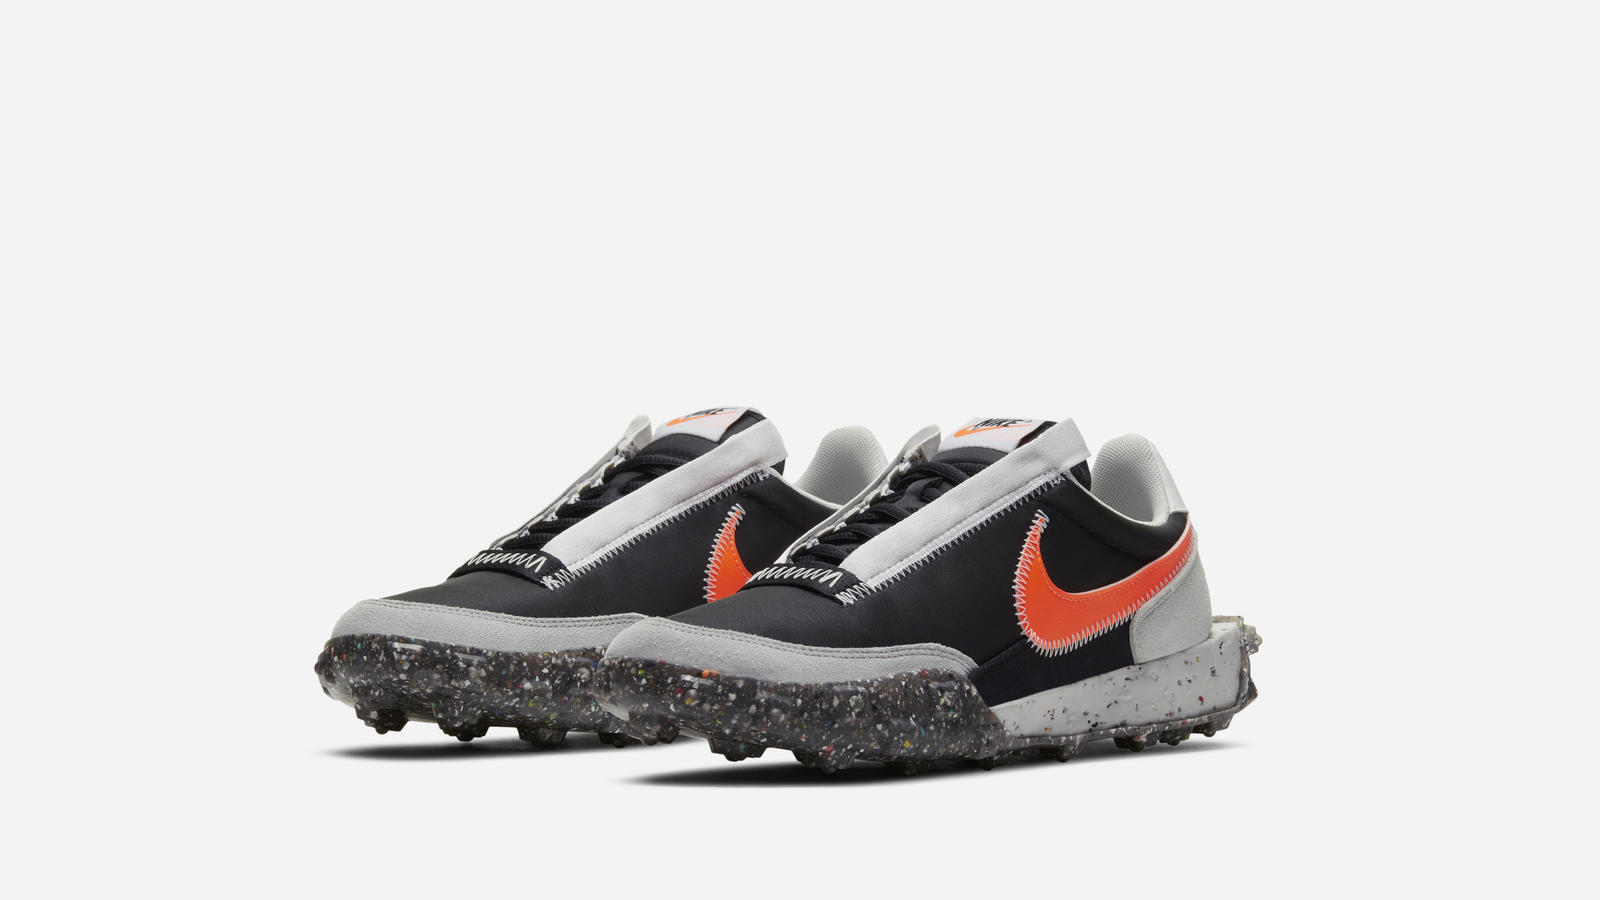 Nike Women's Waffle Racer Crater Official Images and Release Date 6